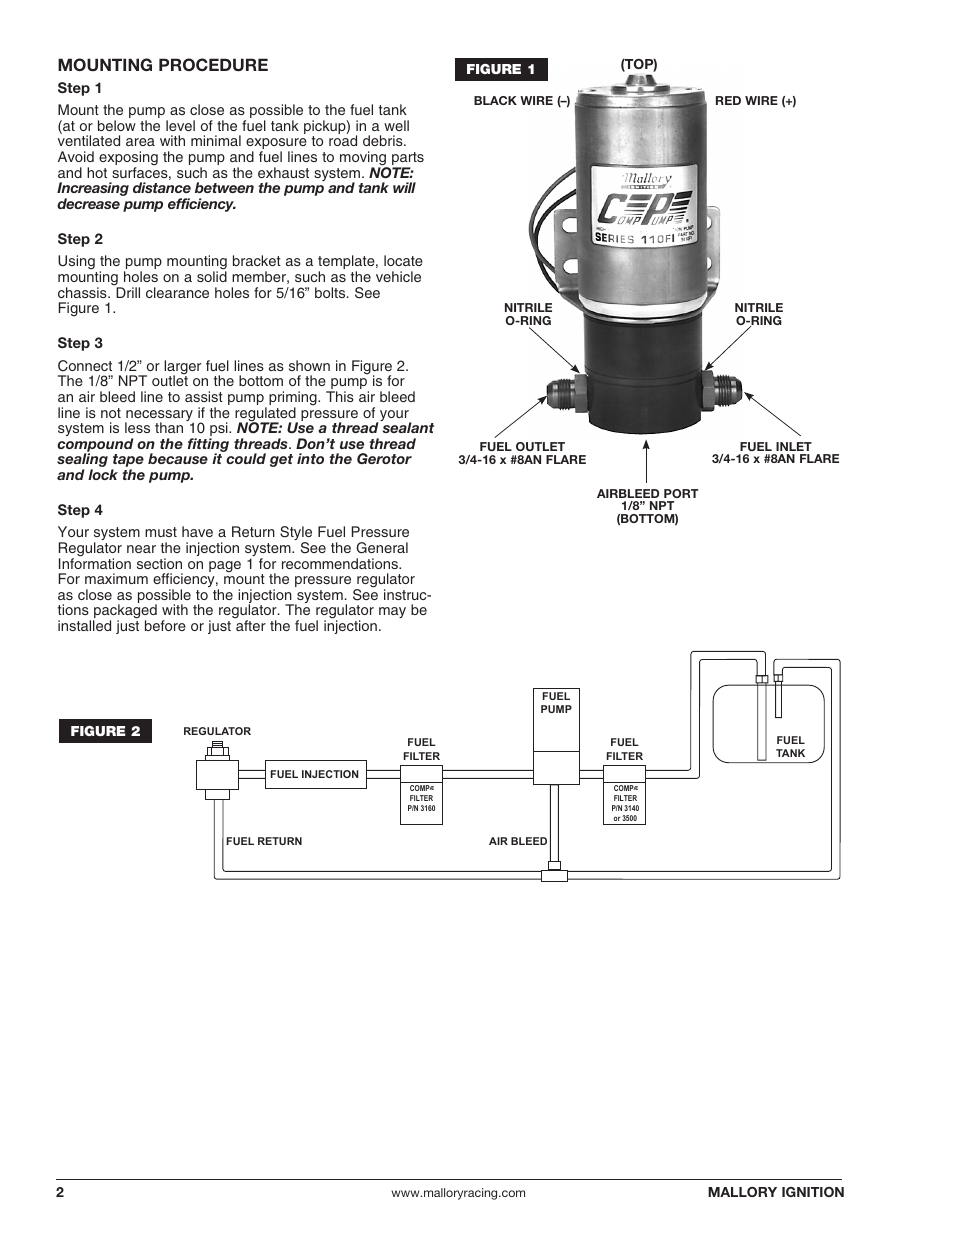 medium resolution of mallory fuel pump wiring diagram wiring diagrammounting procedure mallory ignition mallory comp pump series 110fimounting procedure